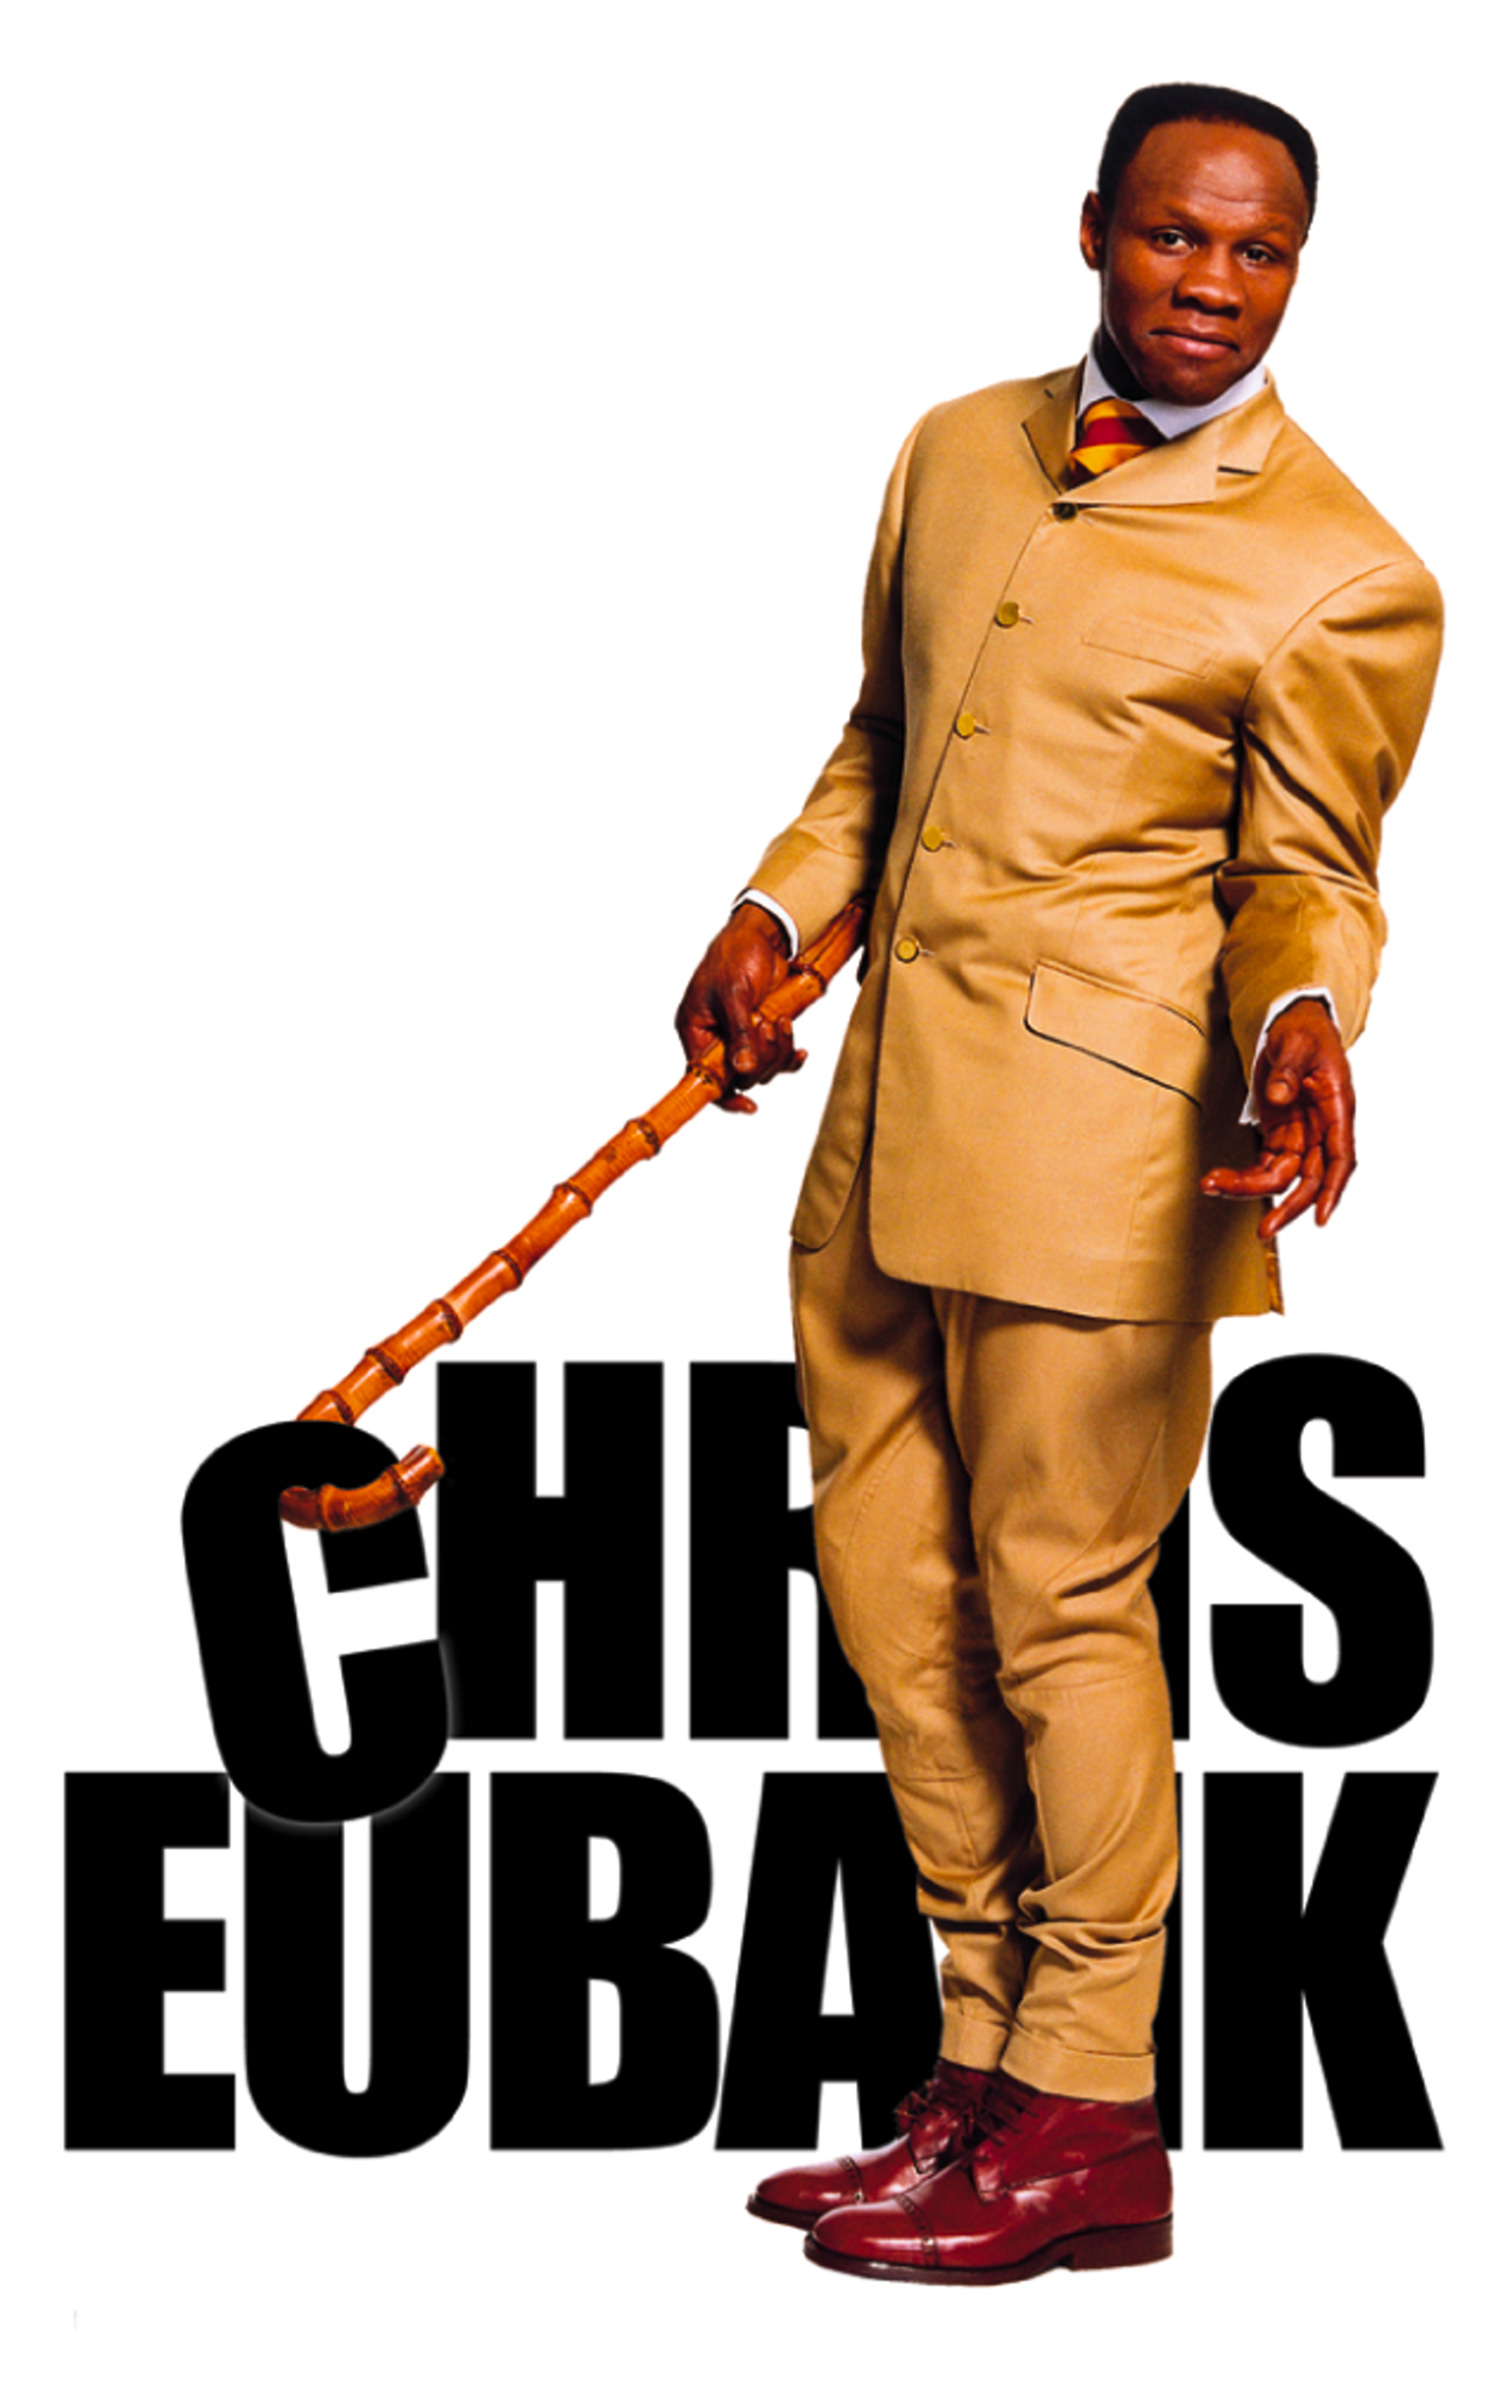 Chris Eubank: The Autobiography